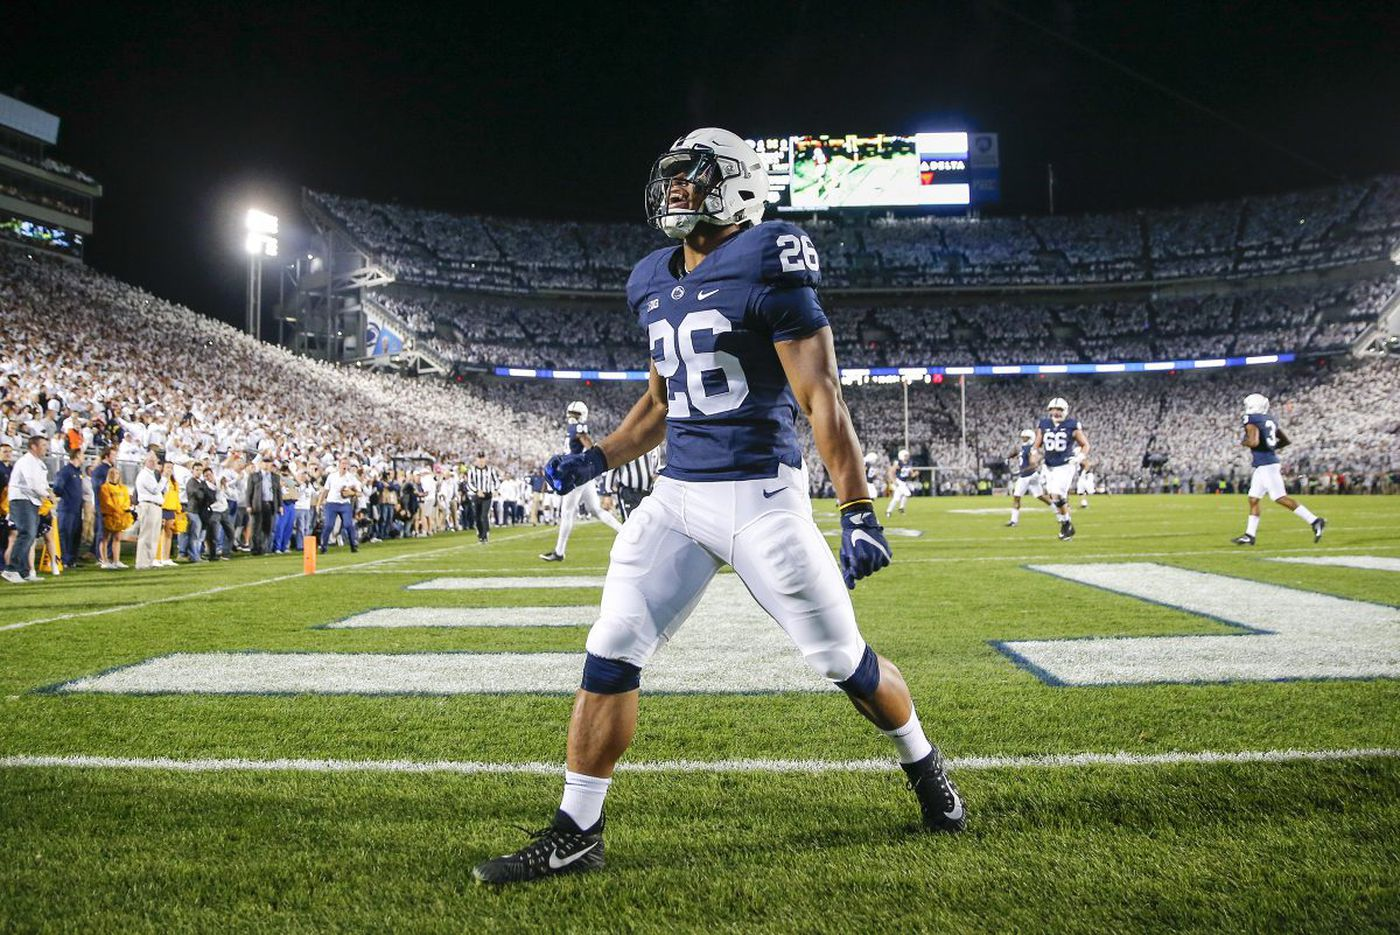 Saquon Barkley announces he will leave Penn State and enter NFL draft